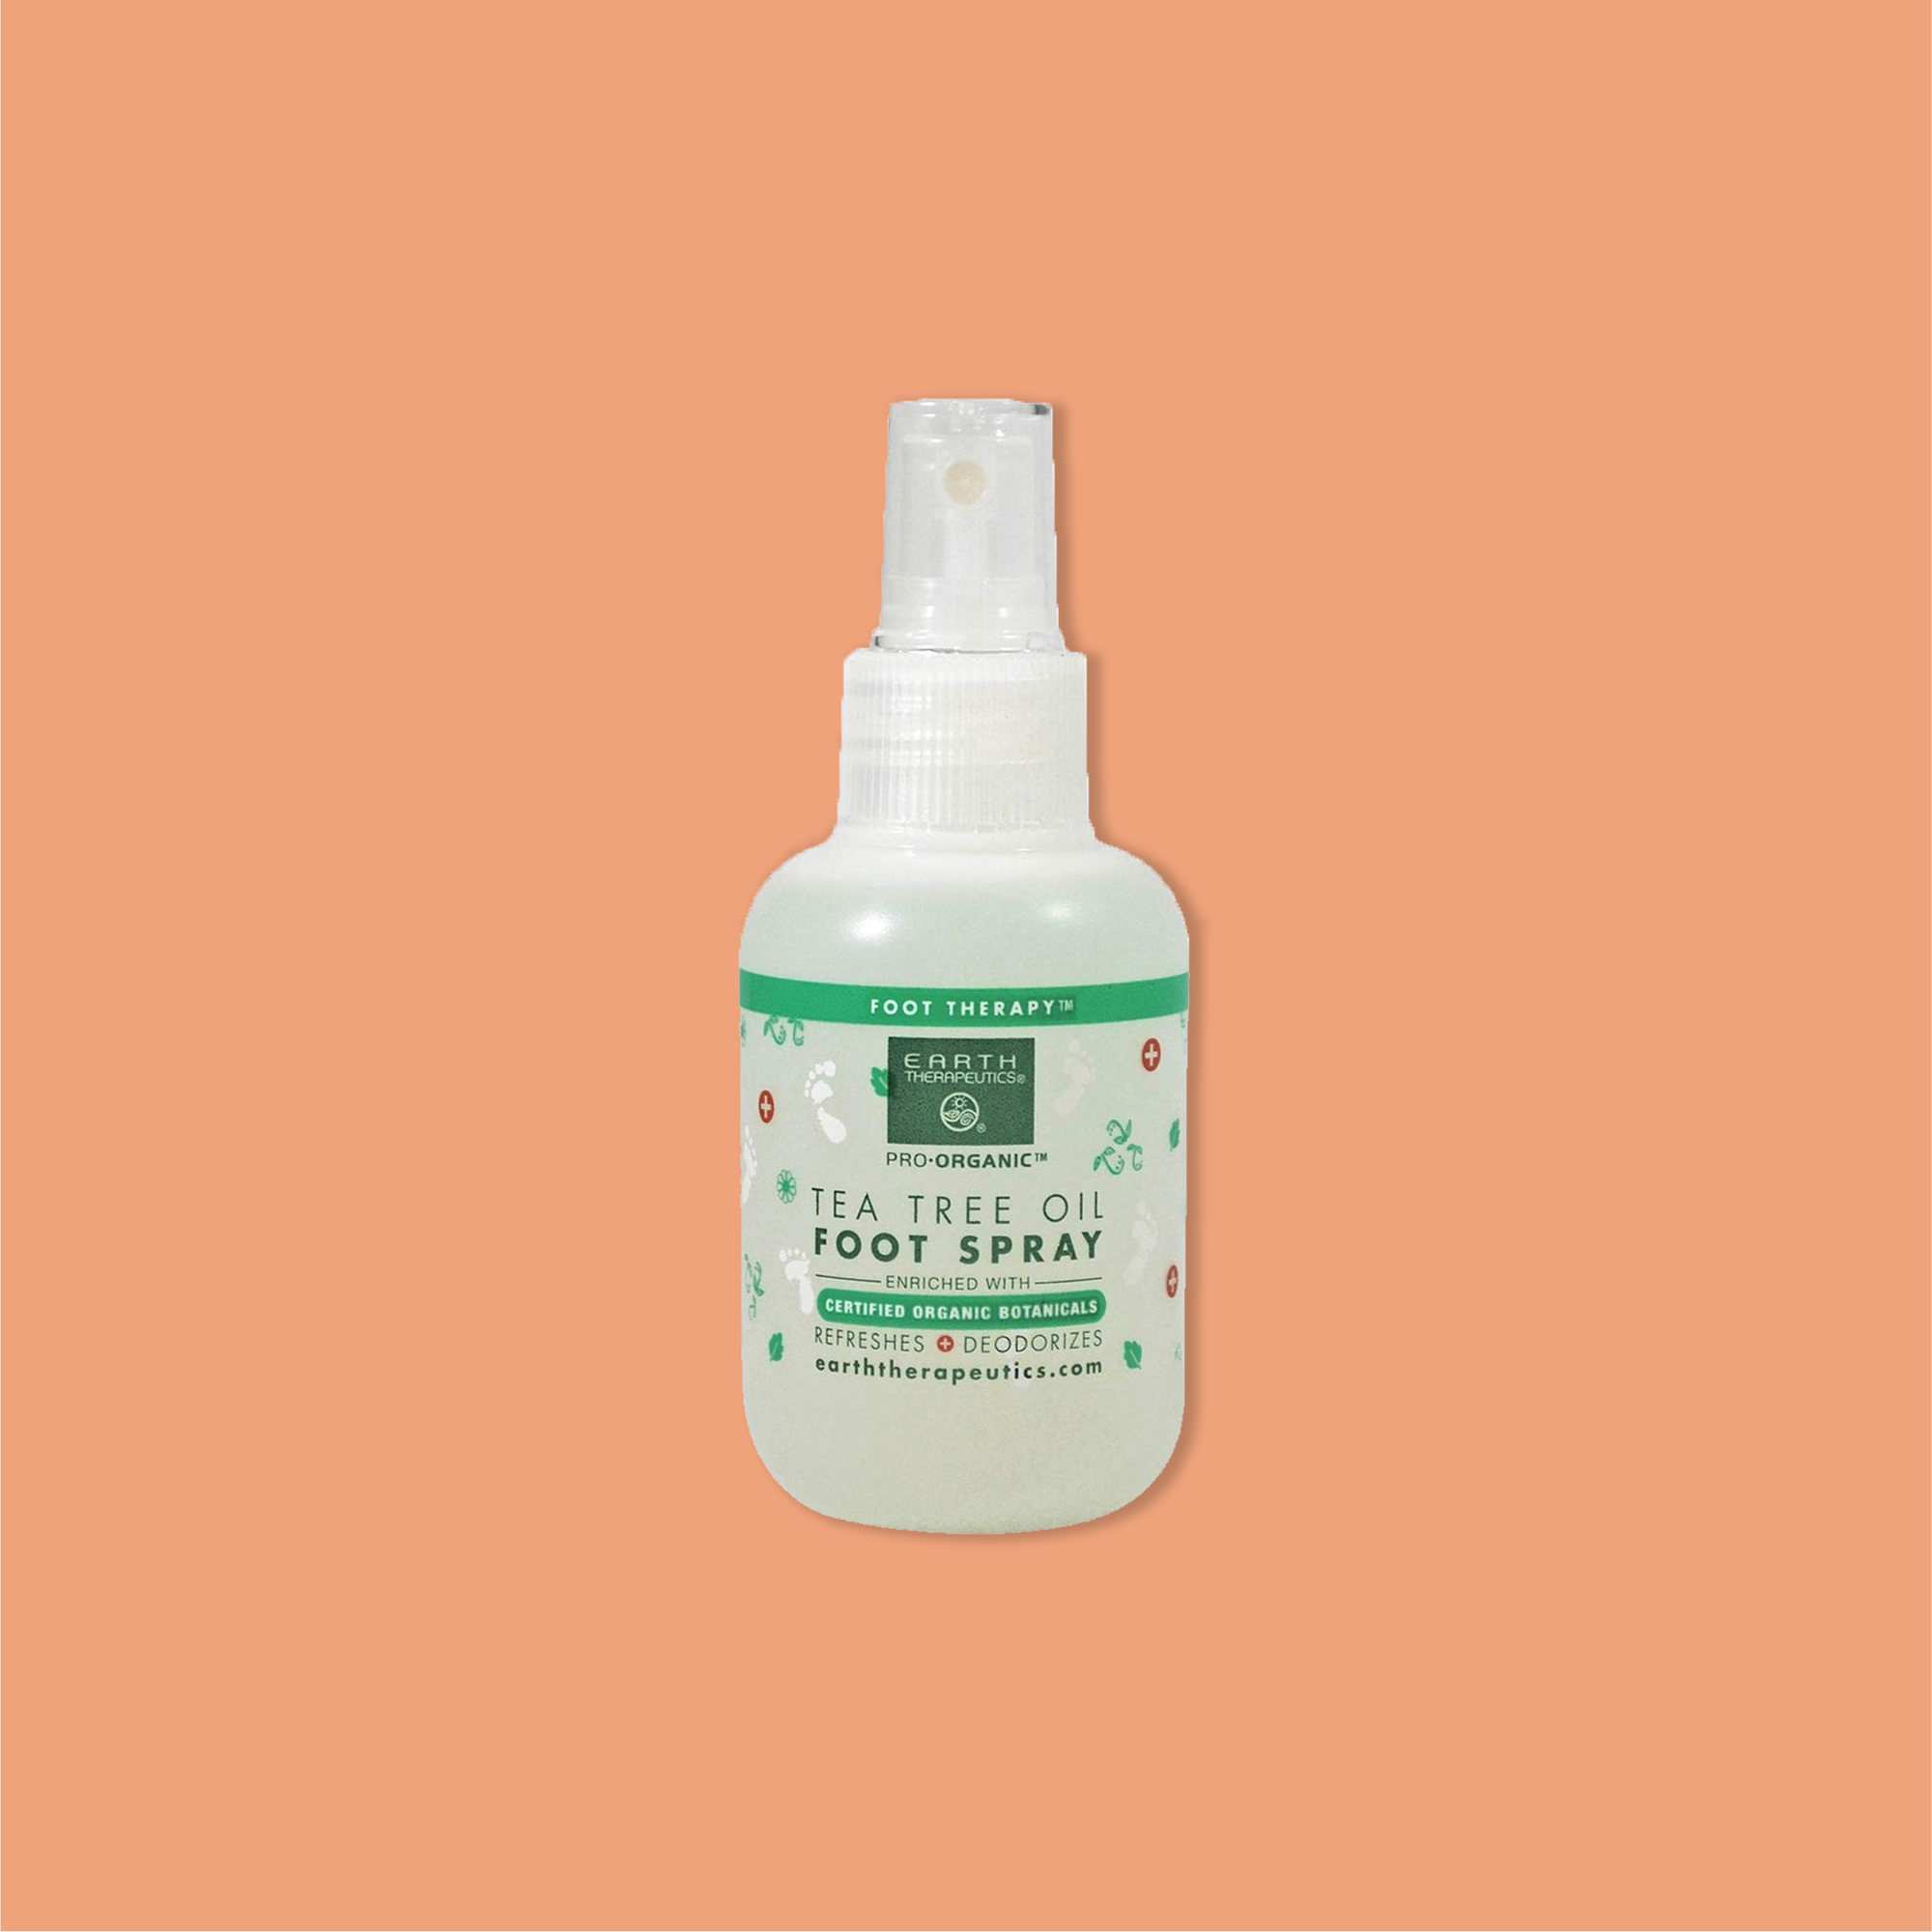 tea tree oil foot spray